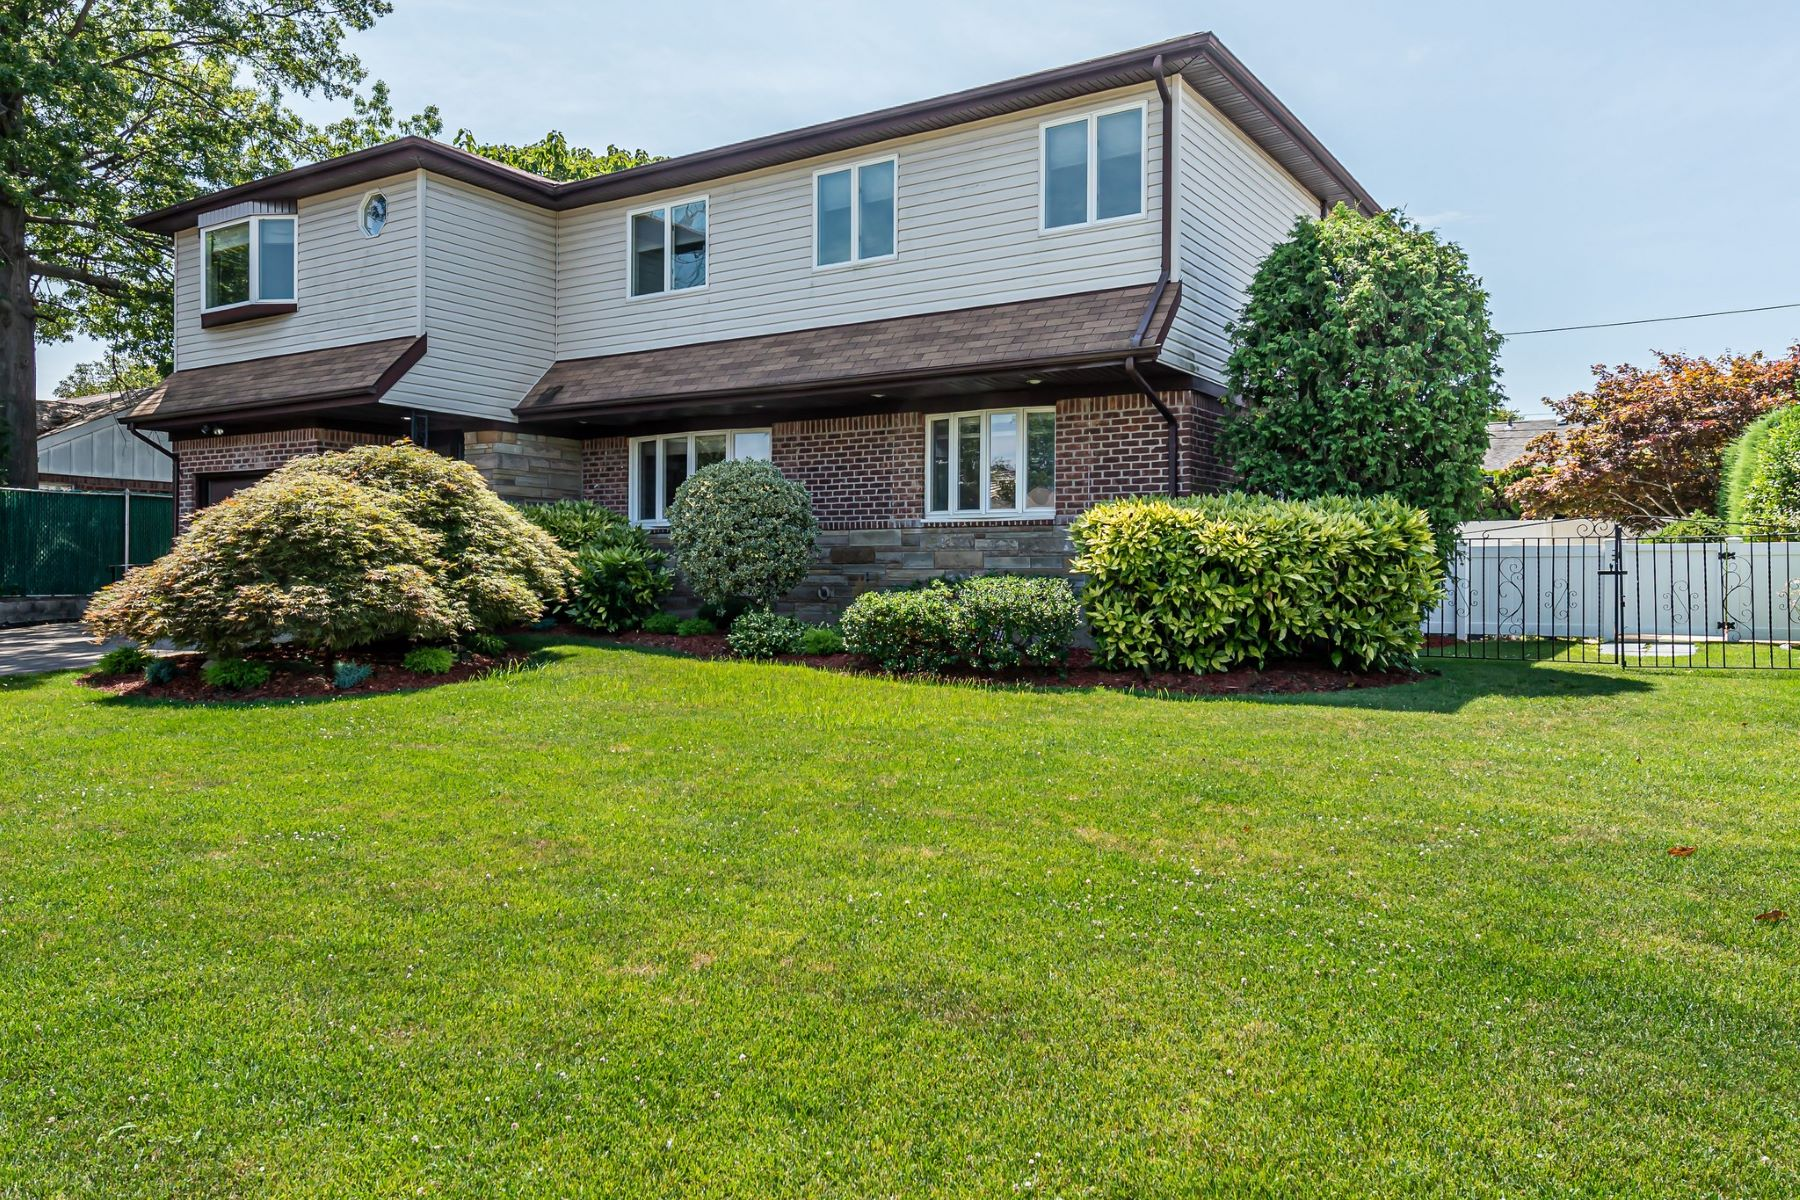 Single Family Homes for Sale at New Hyde Park 130 Elm Ln New Hyde Park, New York 11040 United States